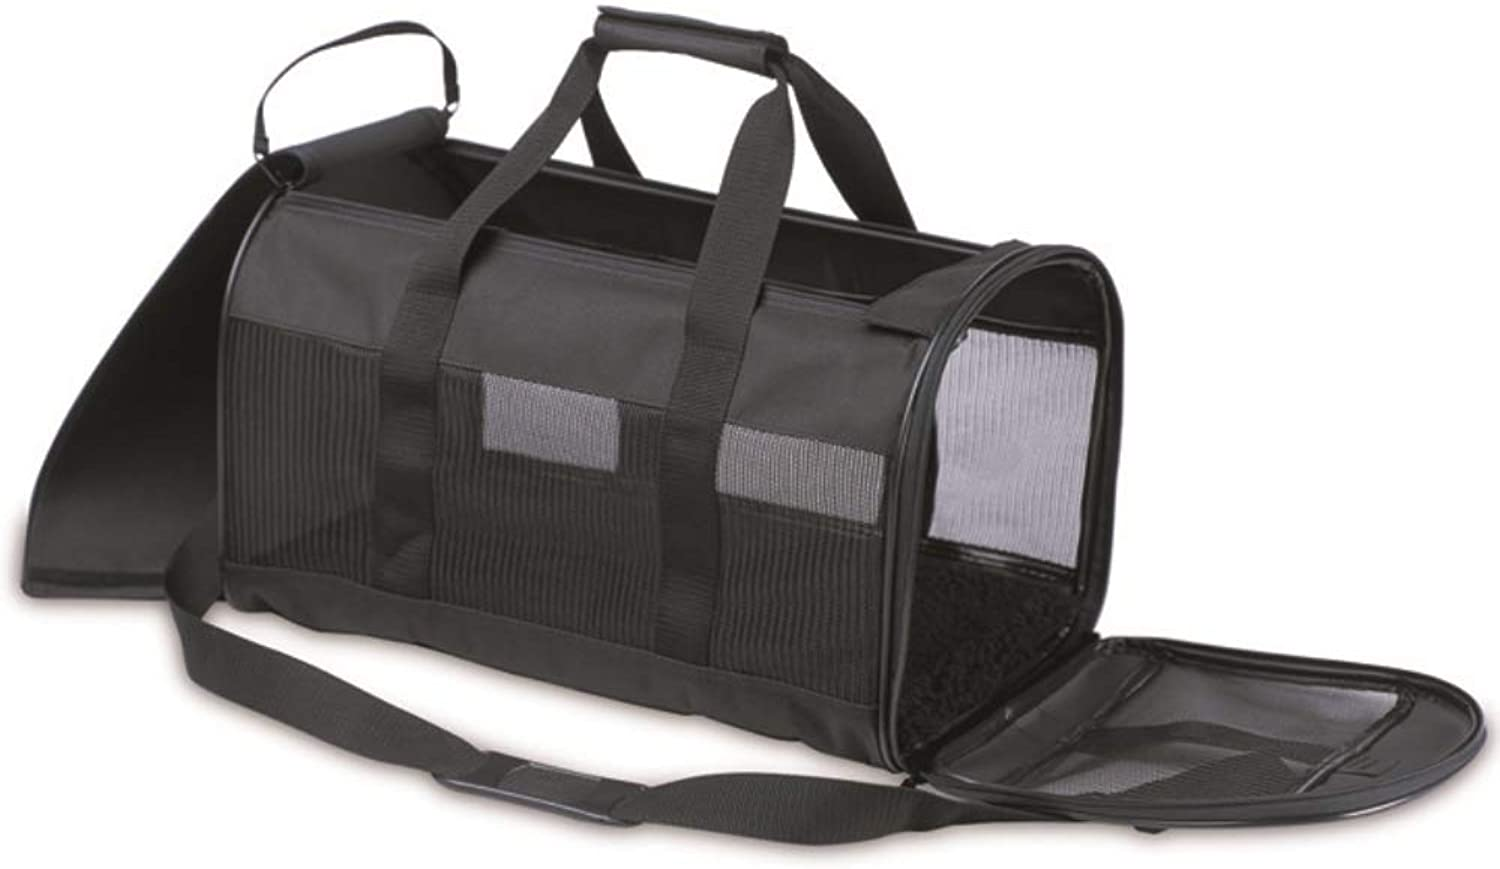 Petmate Soft Sided Pet Taxi, Large